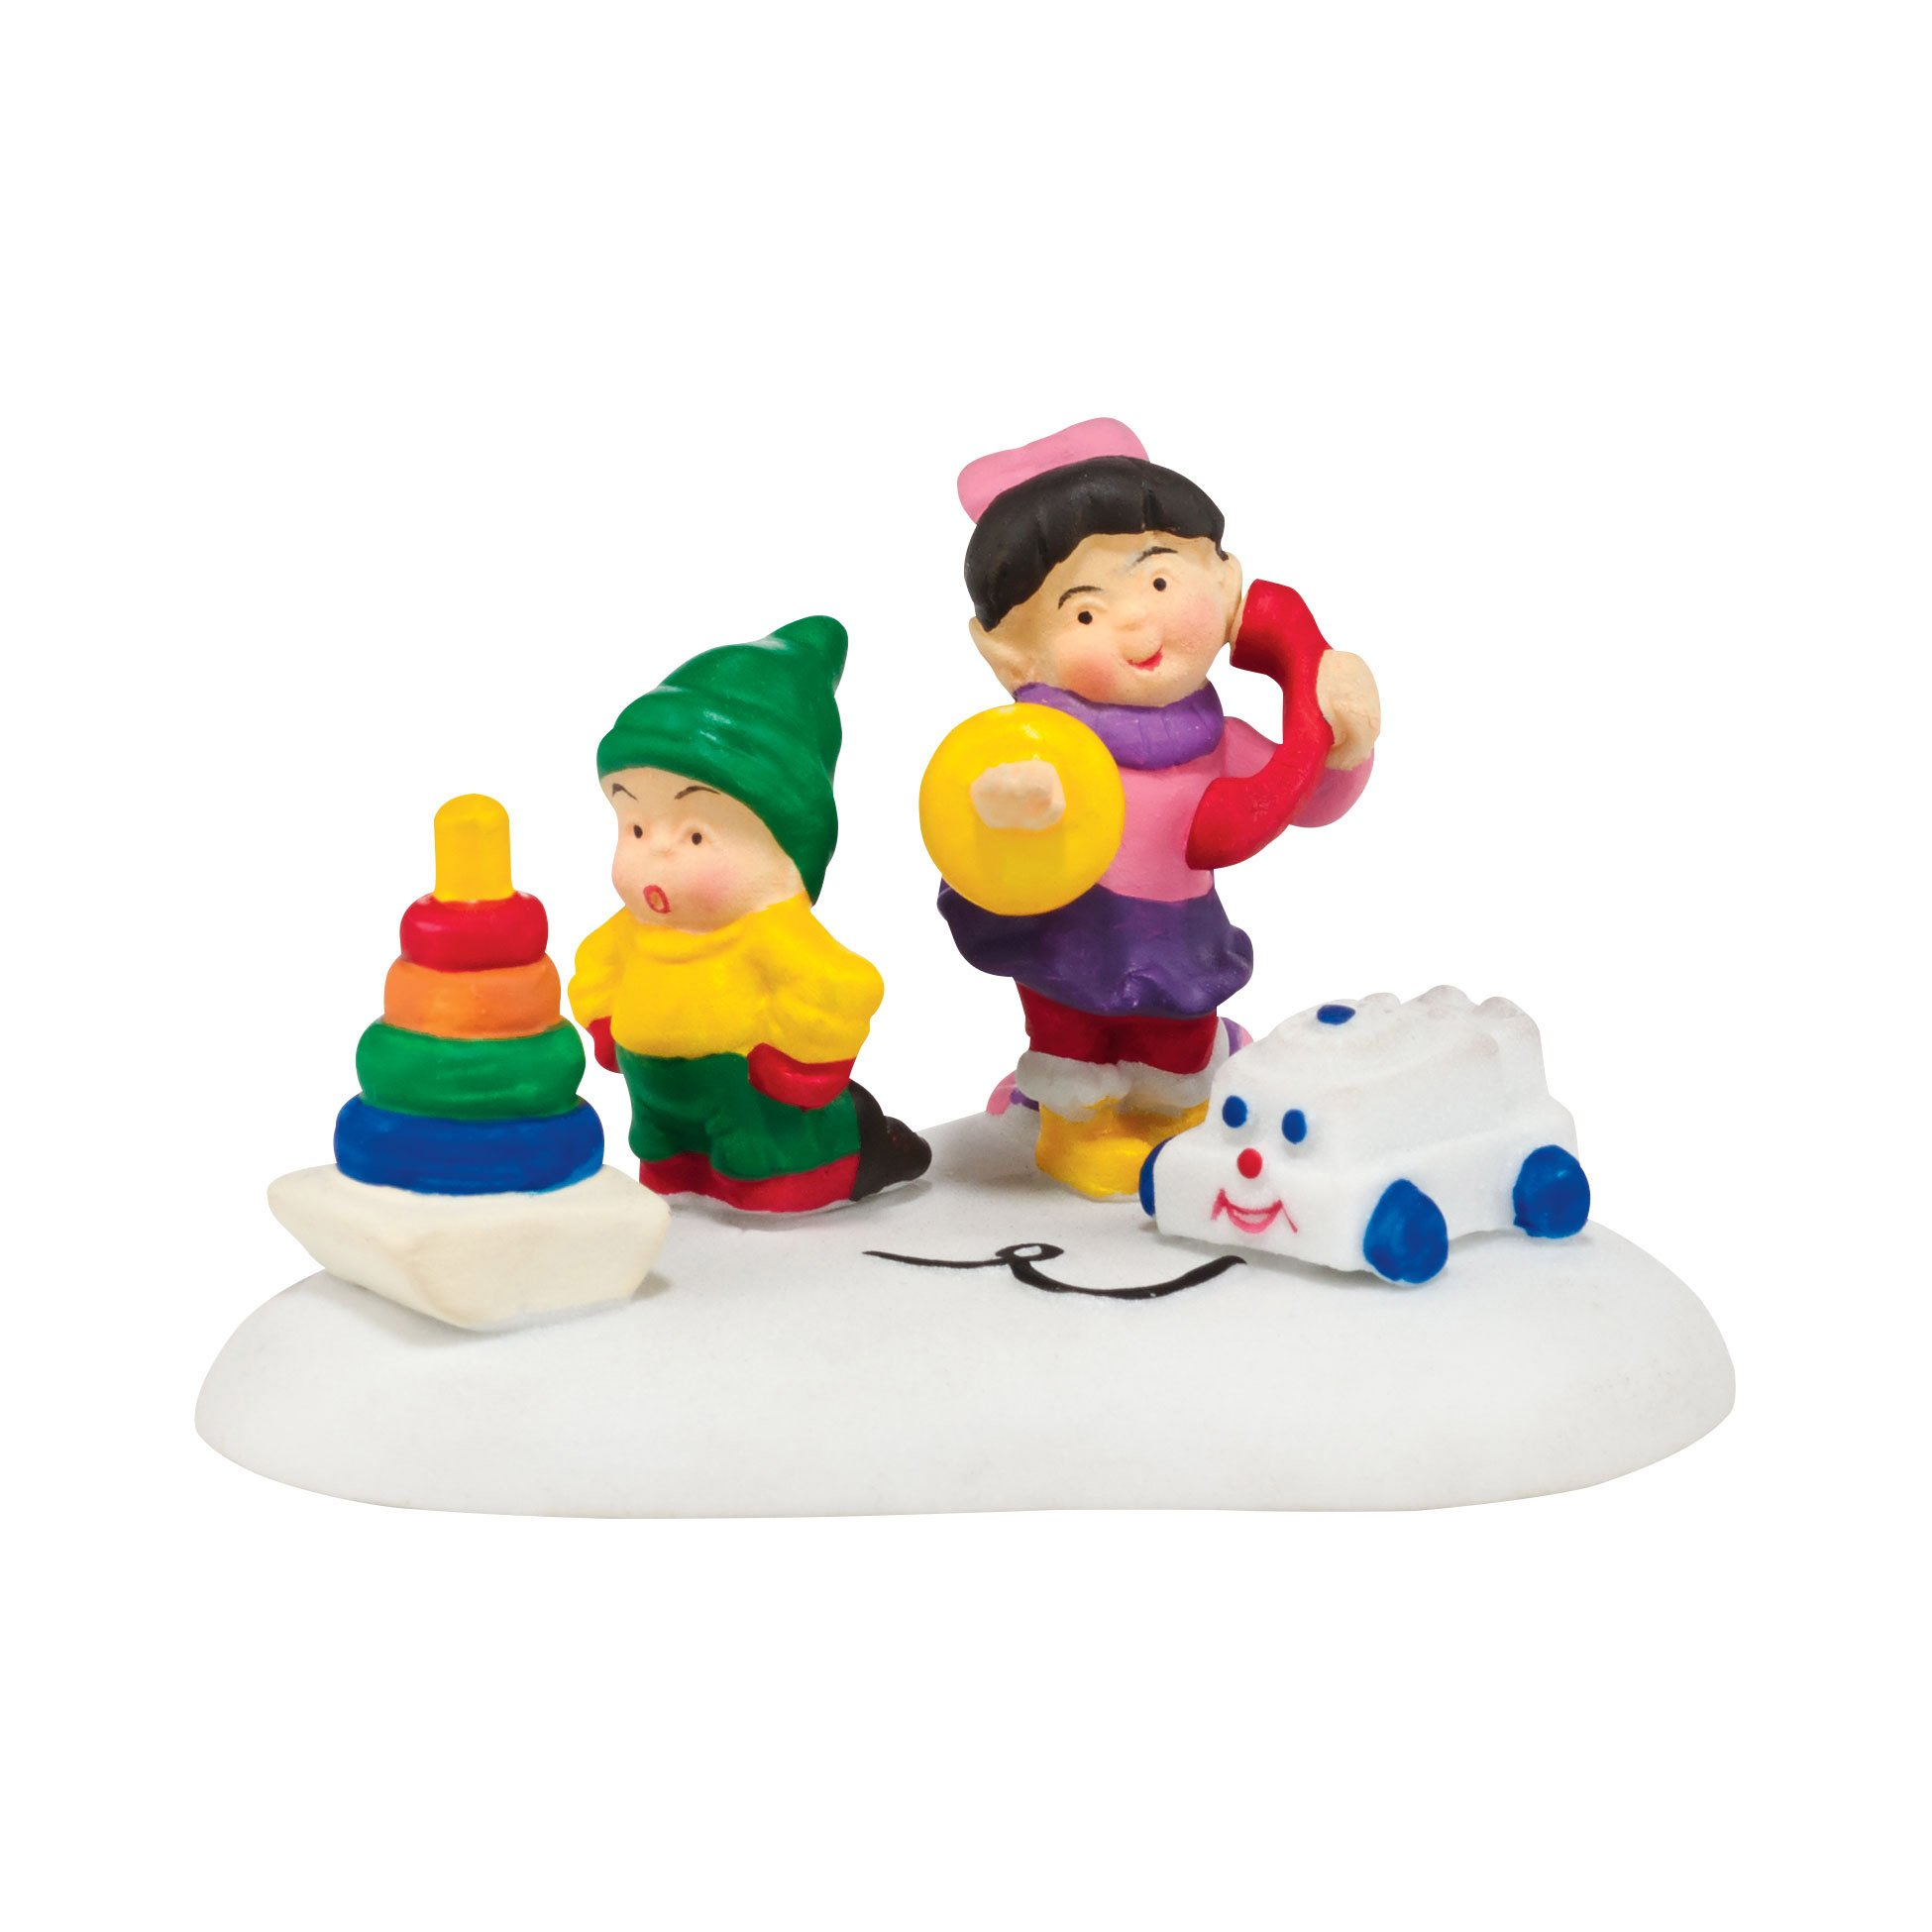 Department 56 North Pole Village Fisher-Price Toys Accessory Figurine, 1.38 inch